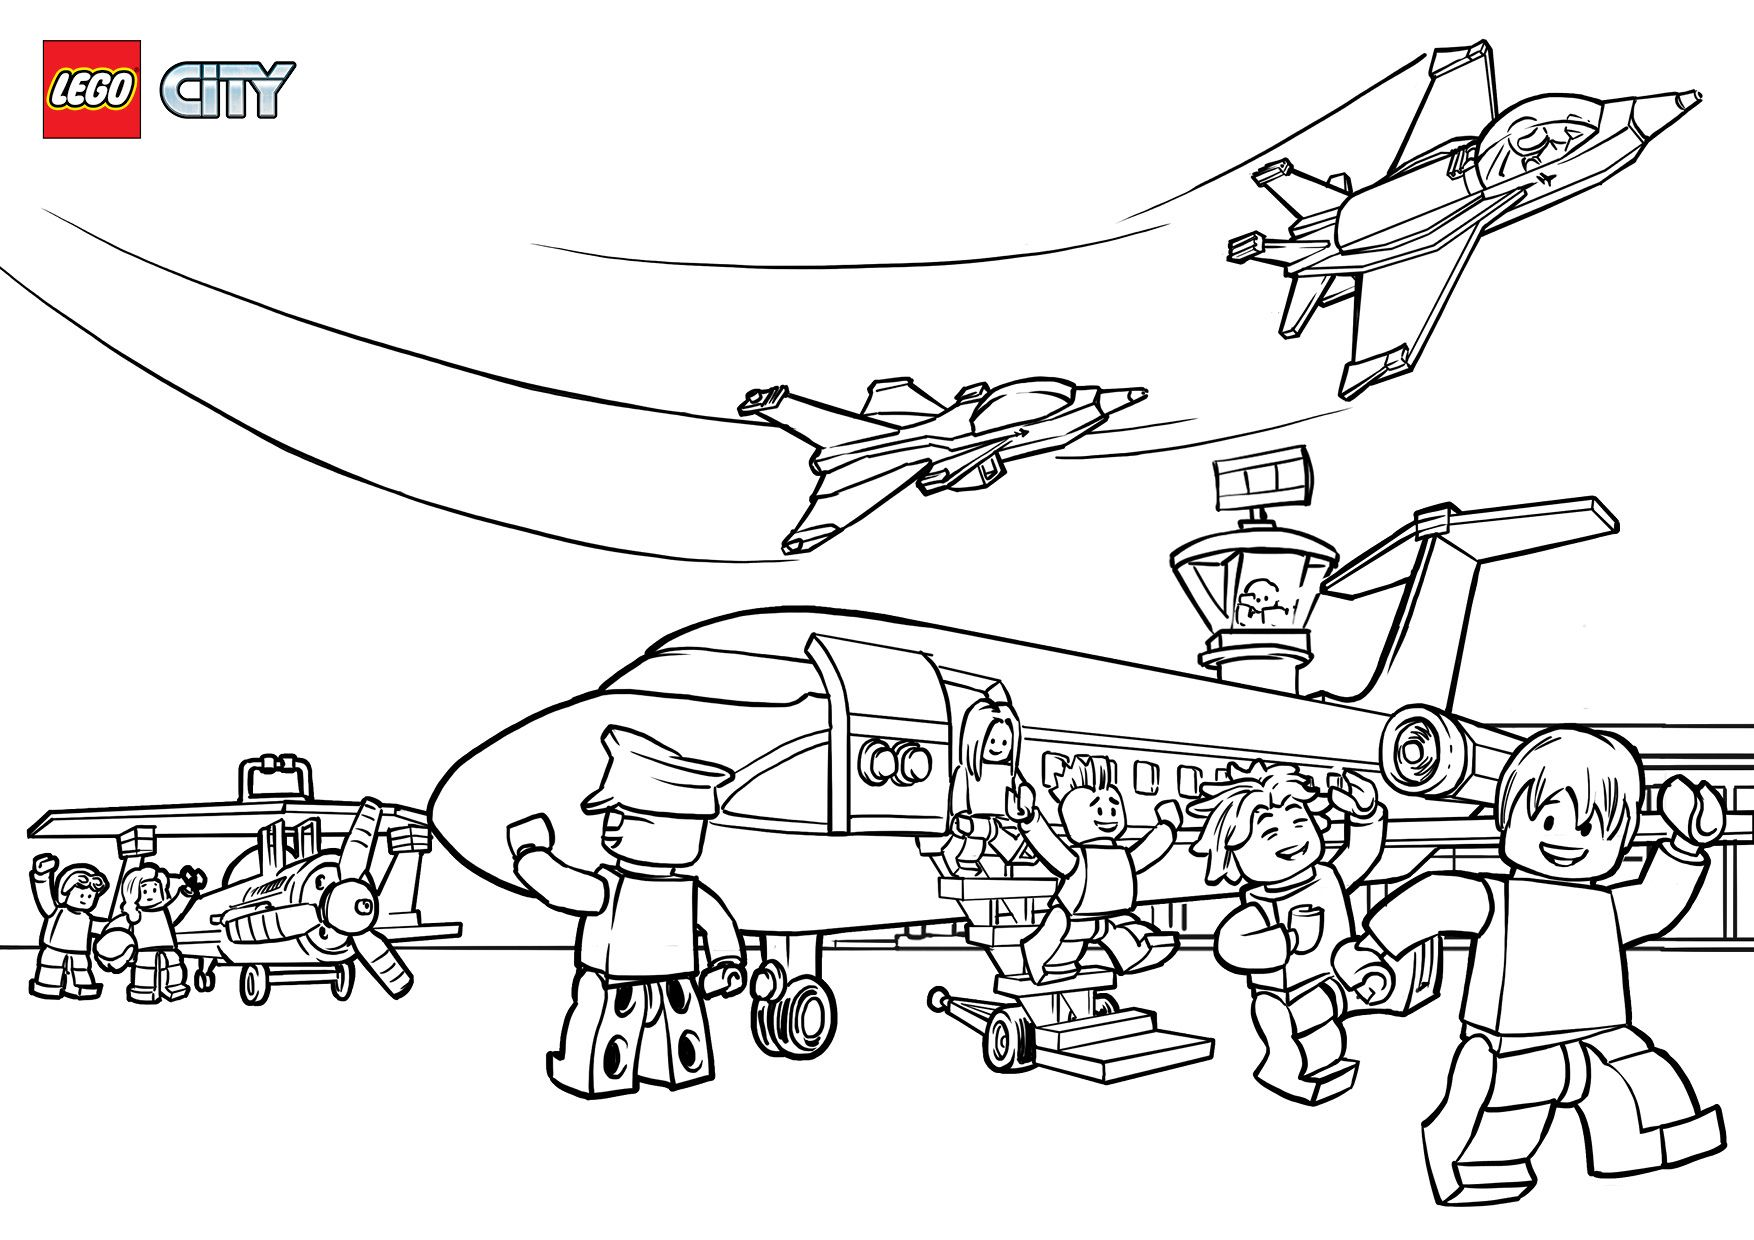 Lego Airport Coloring Pages Google Search Airplane Coloring Pages Coloring Pages Lego Coloring Pages